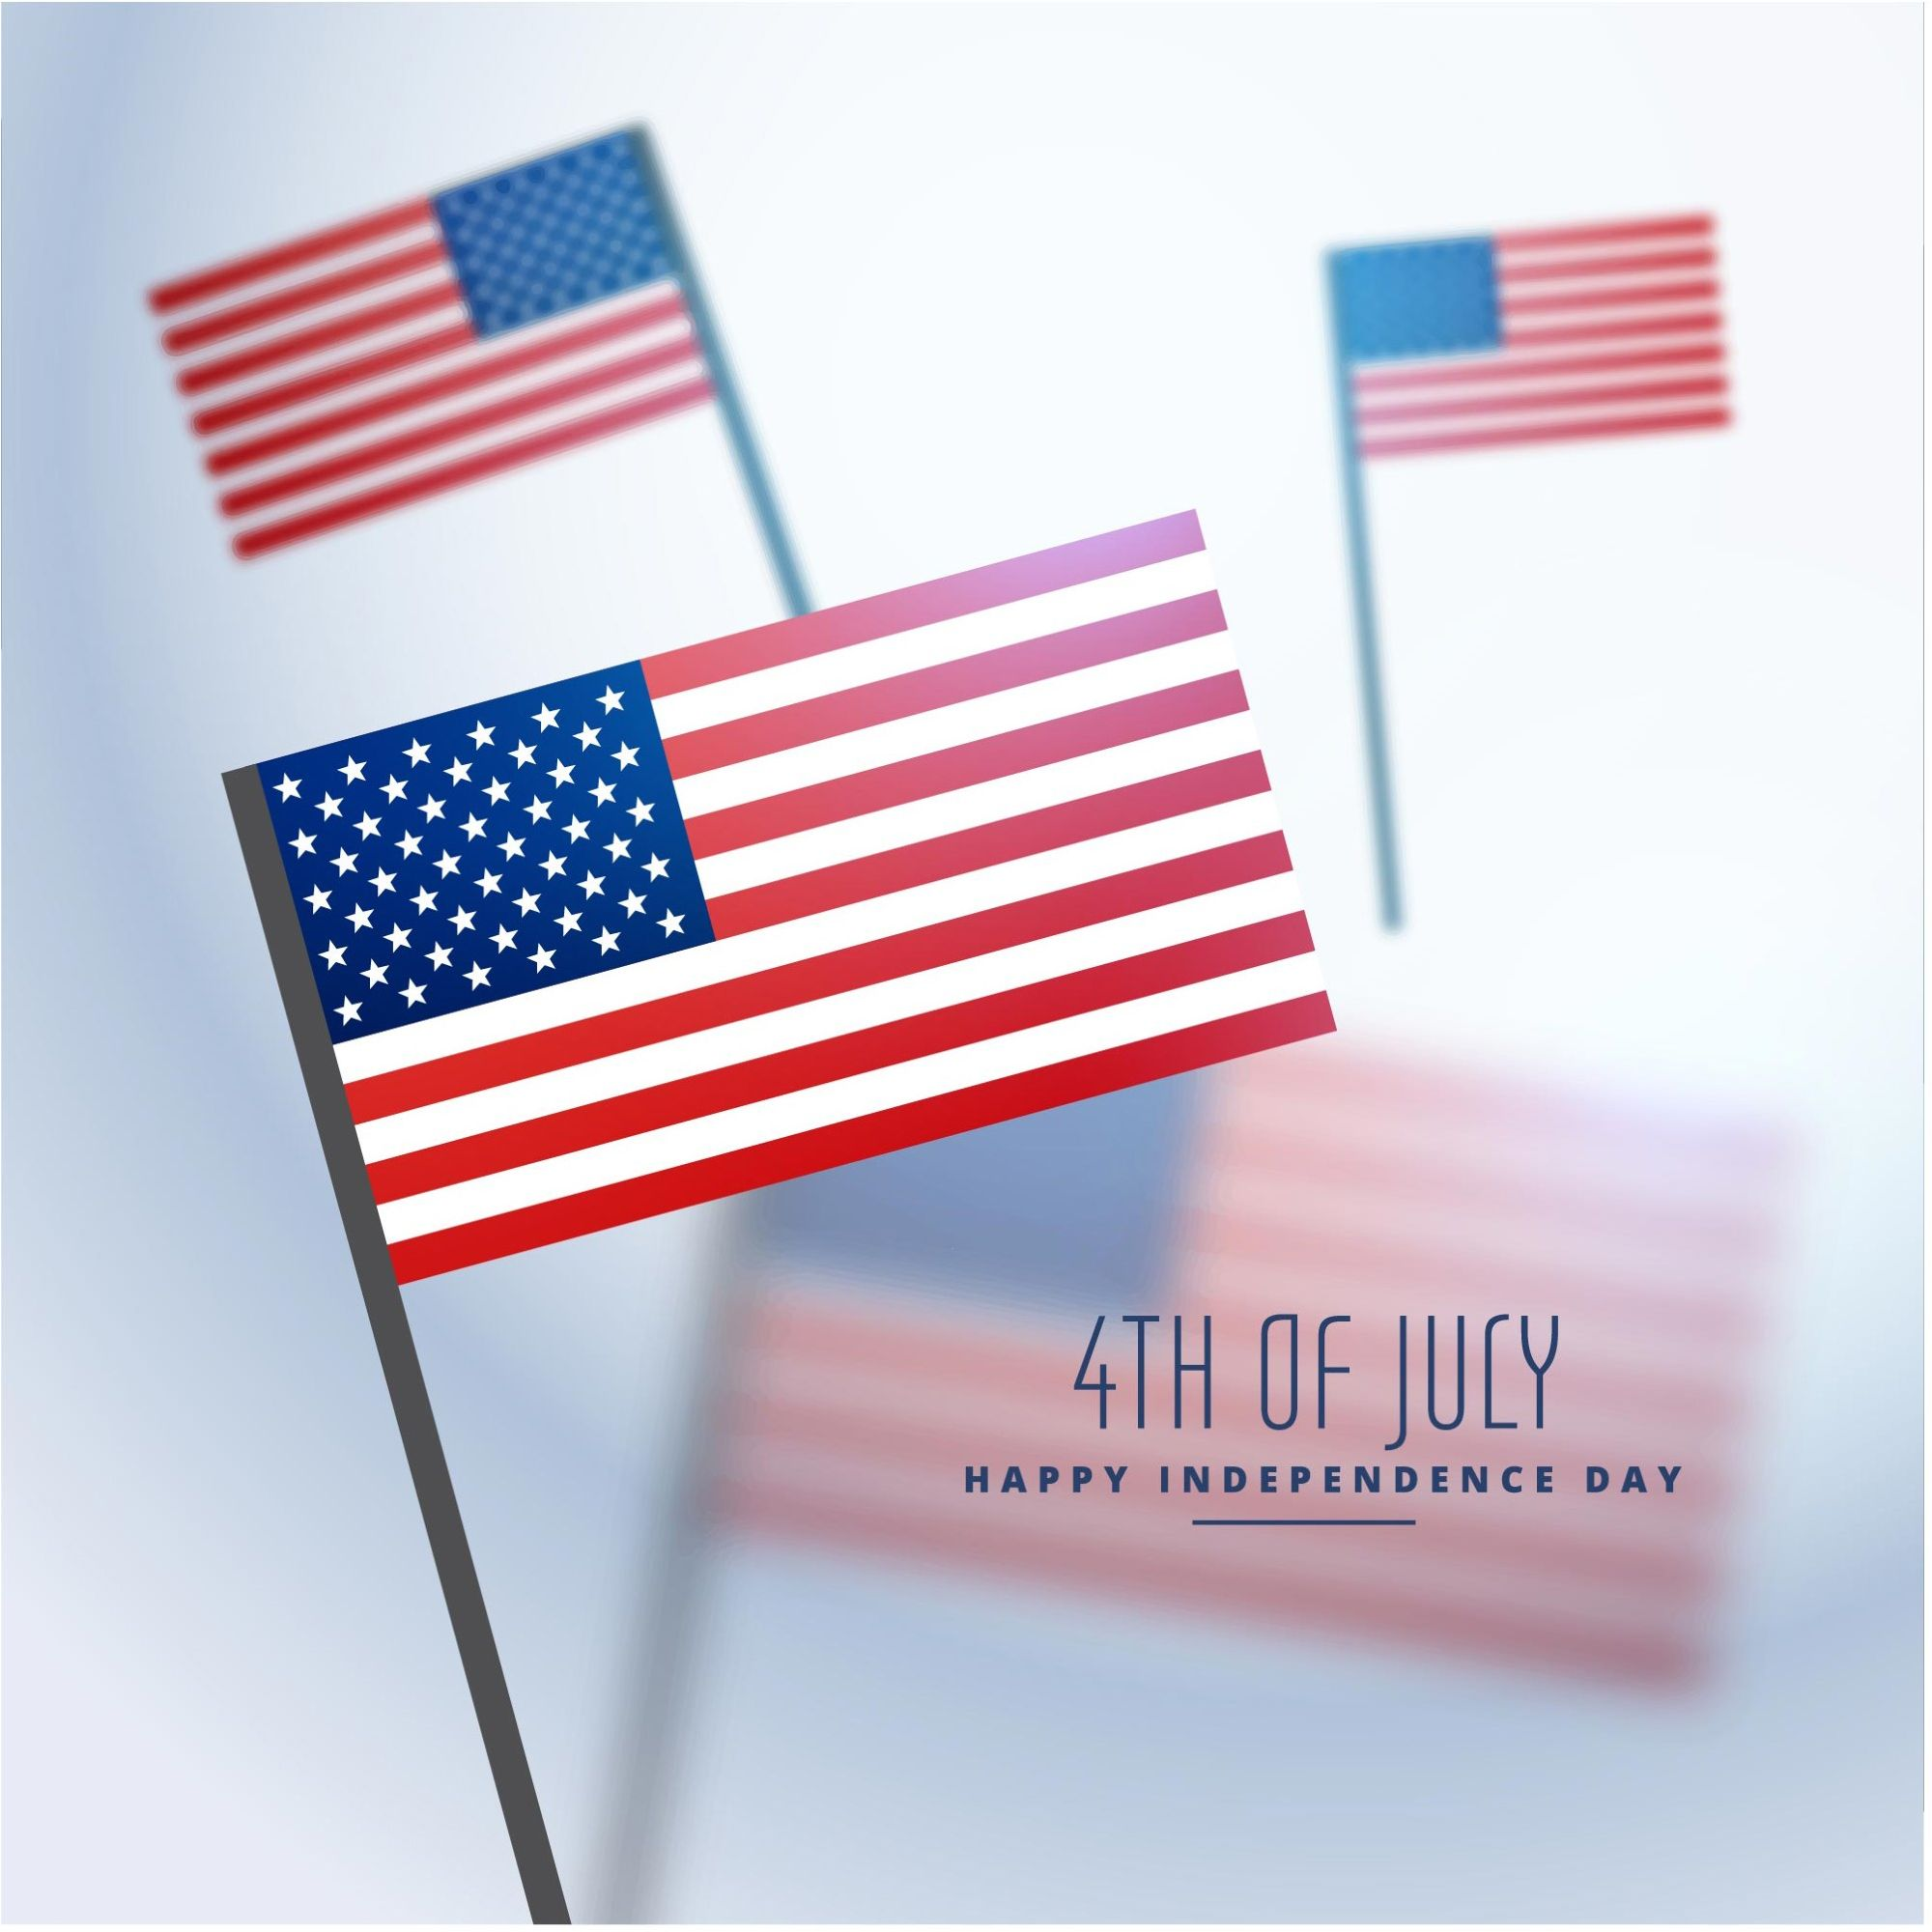 4th Of July American Independence Day Flags Vector